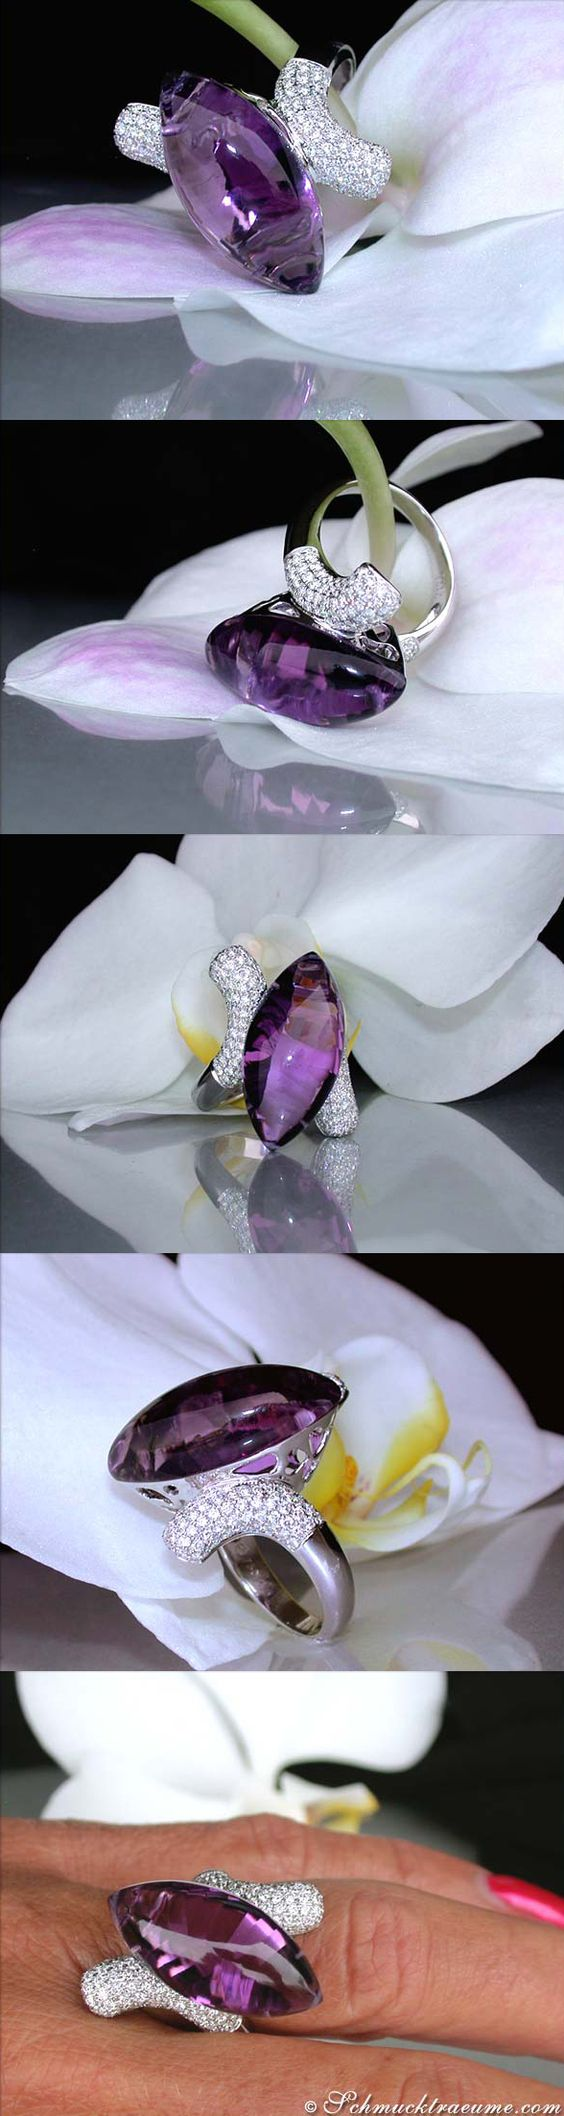 Huge Amethyst Diamond Ring, 20.52 ct. WG18K - Visit: schmucktraeume.com Like: https://www.facebook.com/pages/Noble-Juwelen/150871984924926 Mail: info@schmucktraeume.com